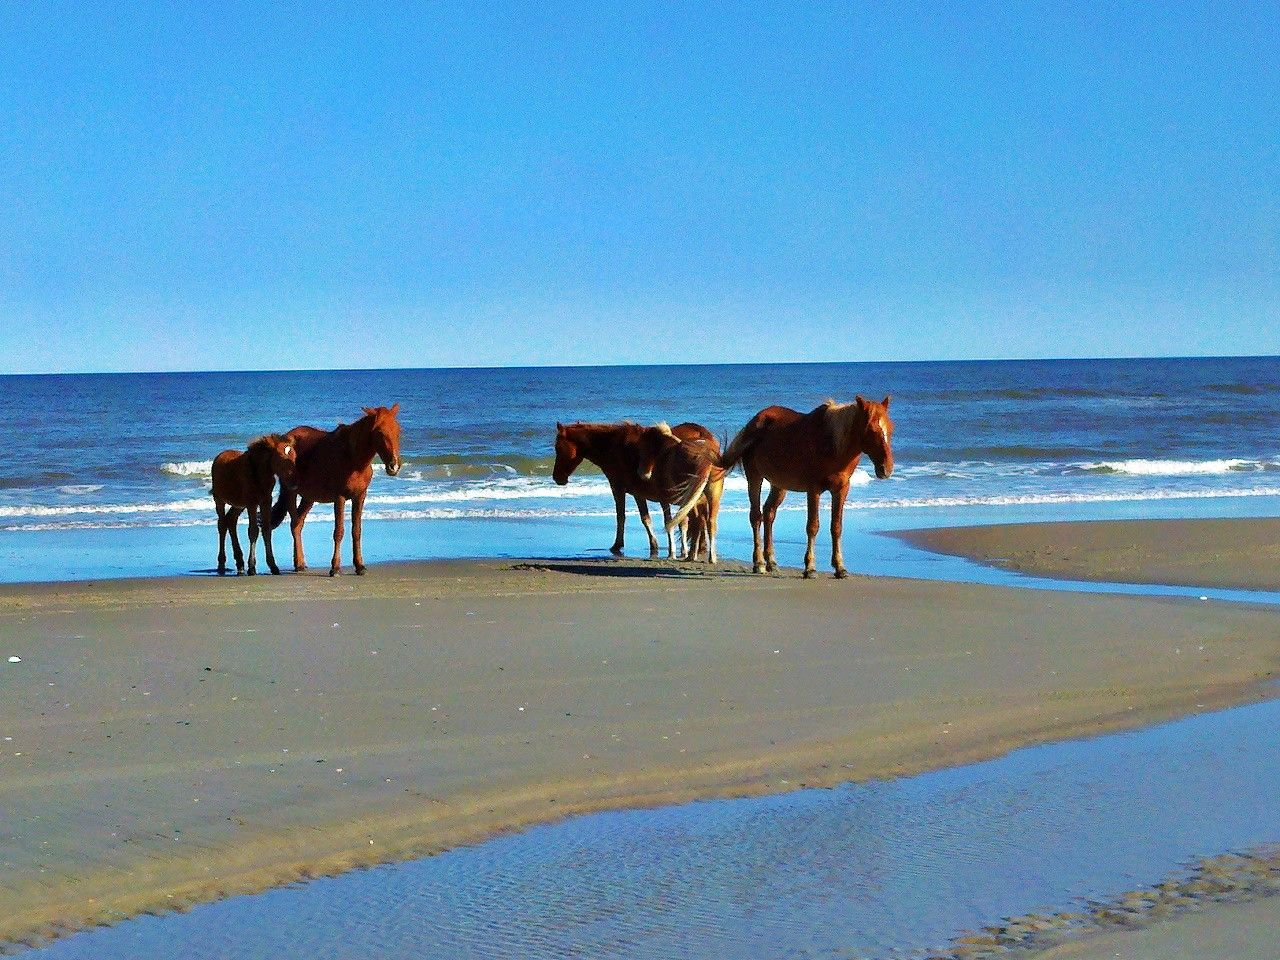 Wild Horses At Corolla Beach North Carolina I Think This Is What Got Me To Read Misty Of Chincoteague By Marguerite Henry